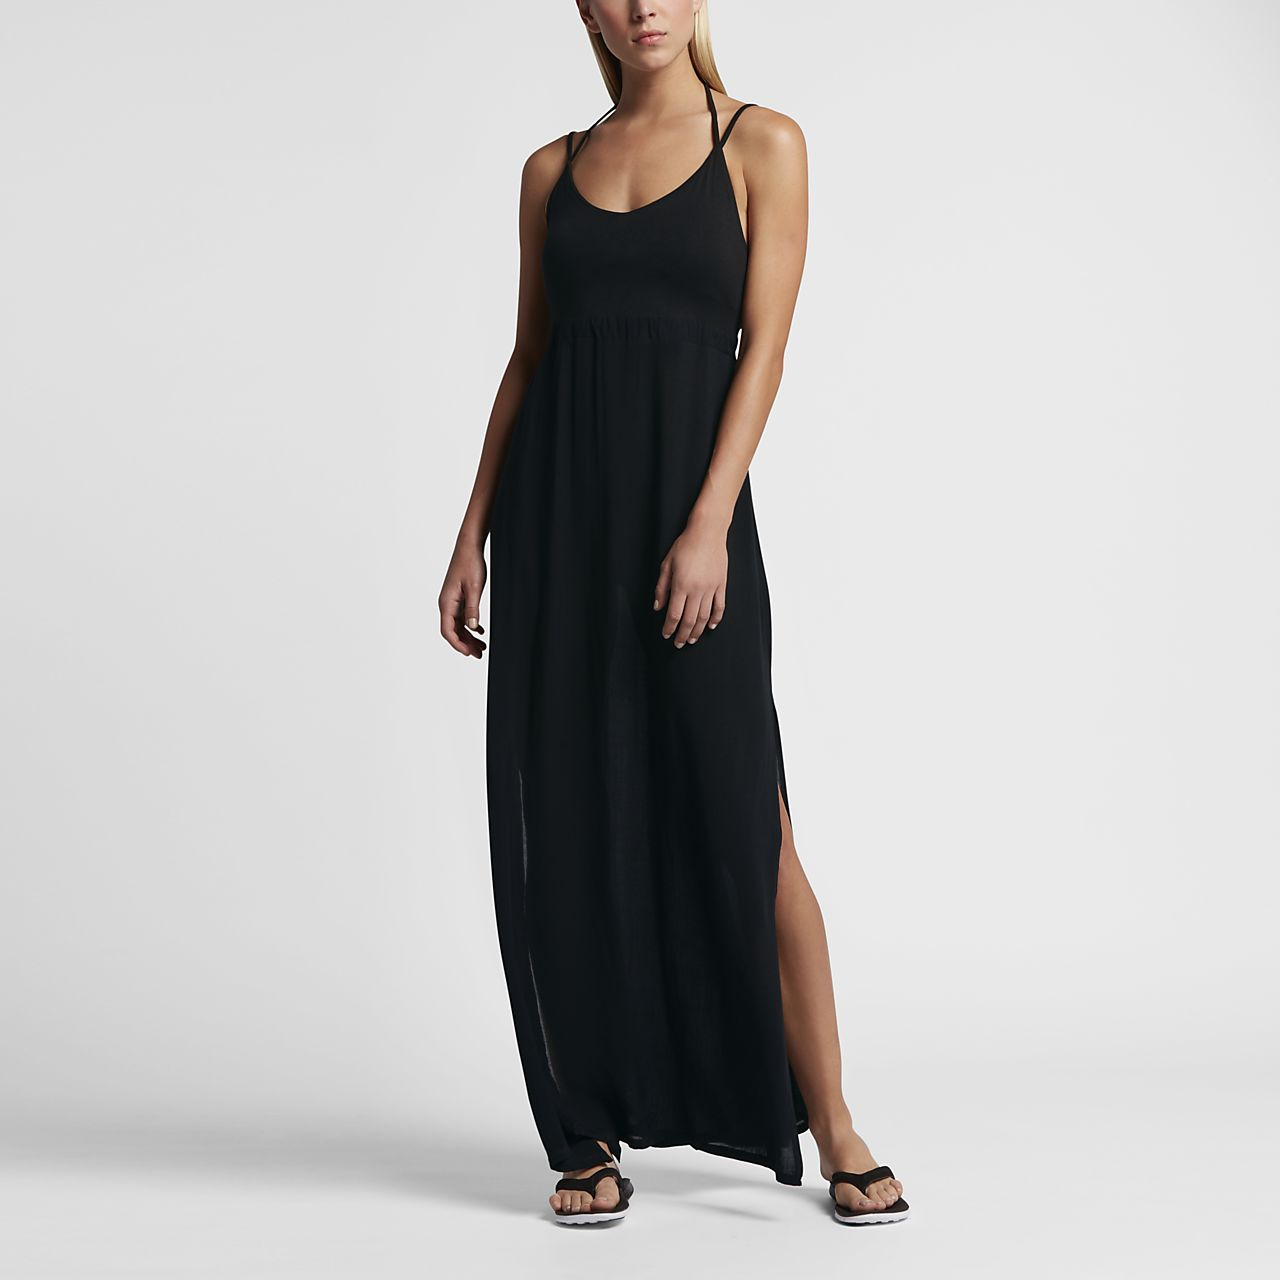 Hurley Ruby Maxi Women's Dresses Black